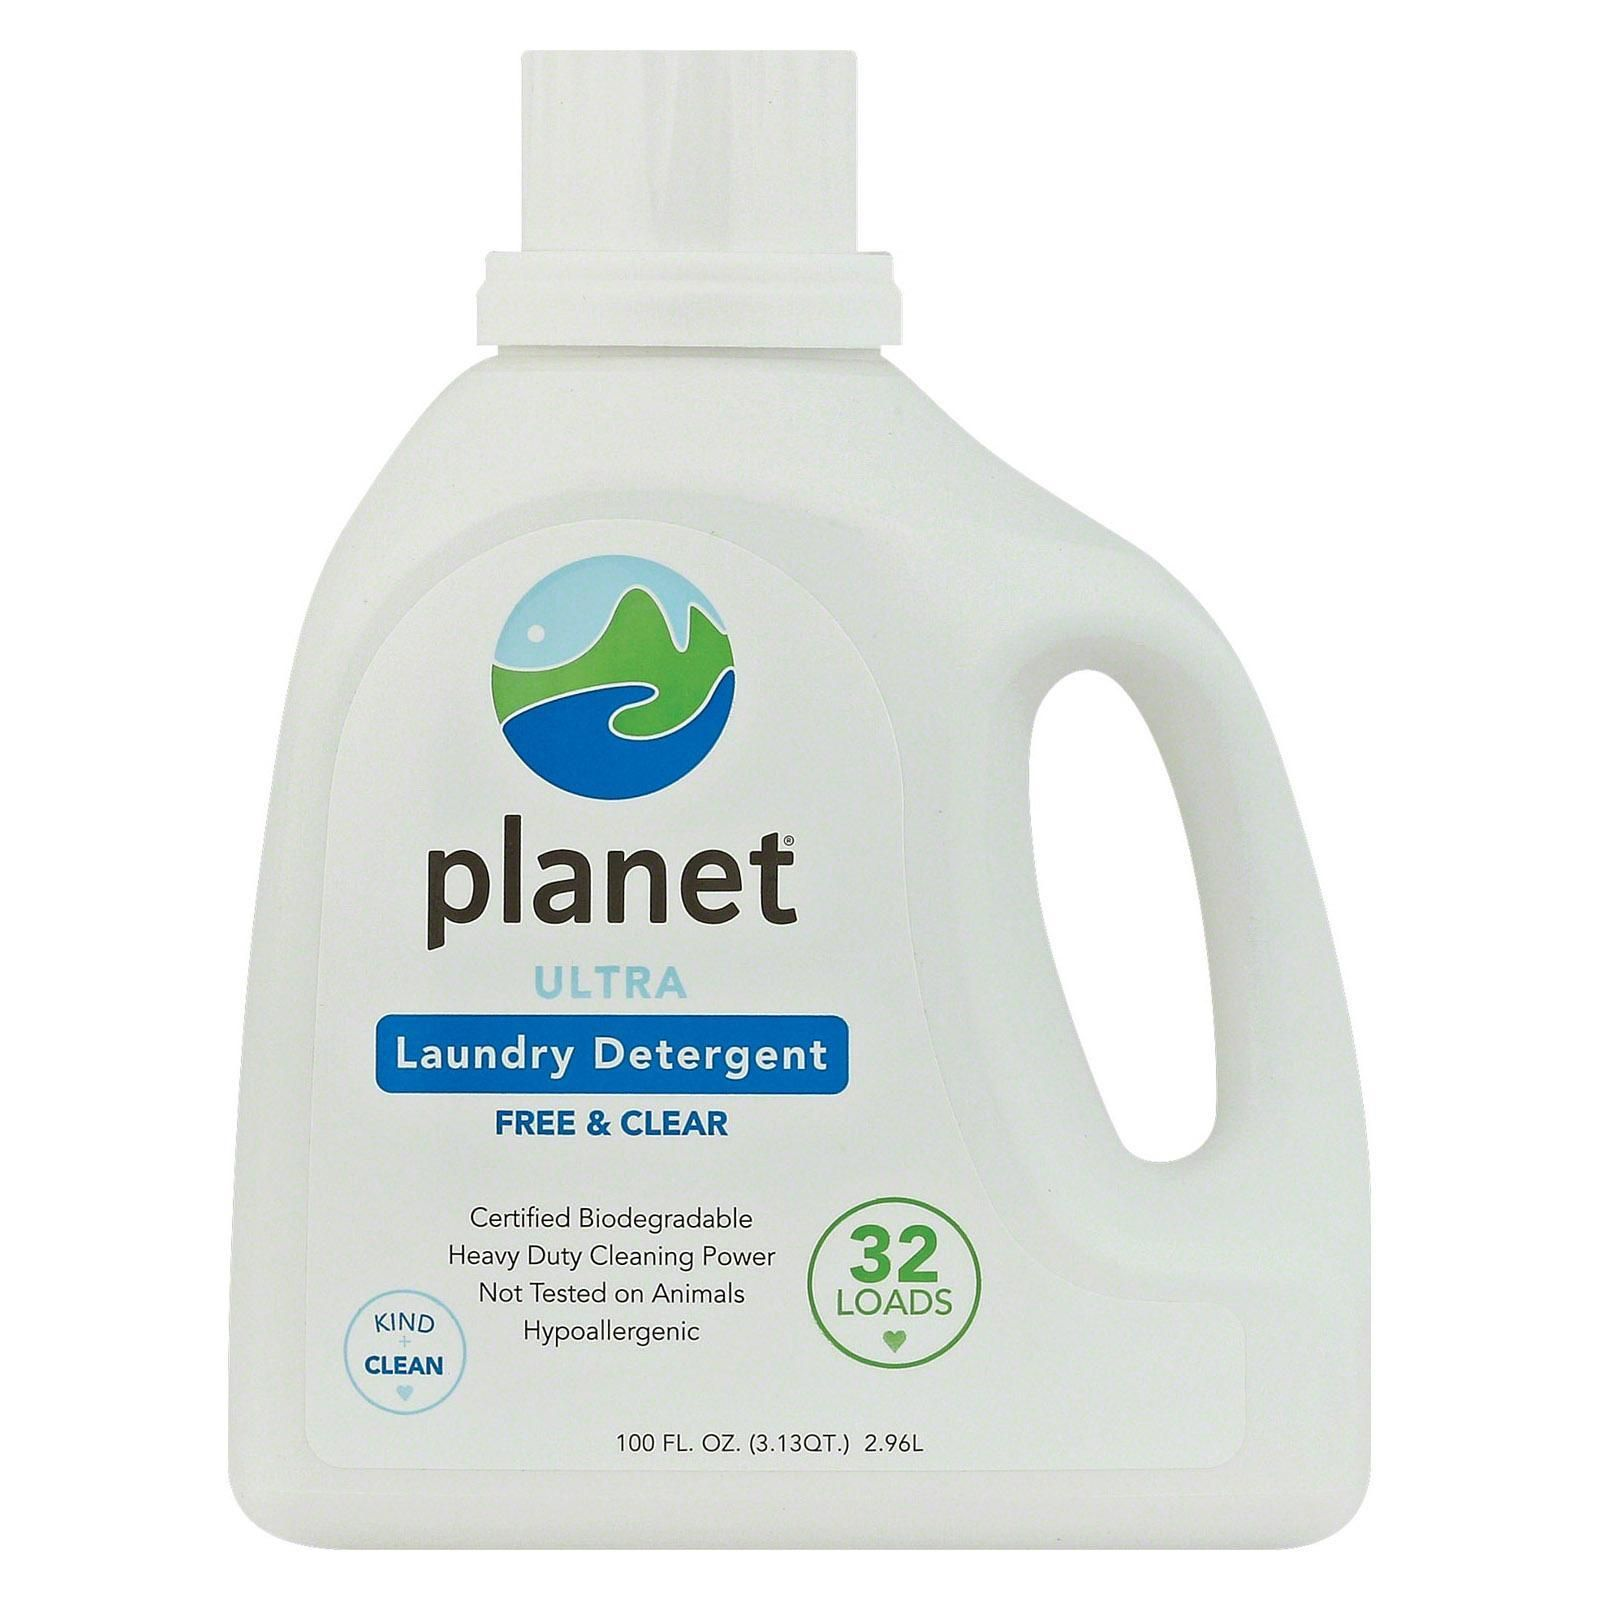 Planet Ultra Laundry Detergent Is A Highly Effective Detergent